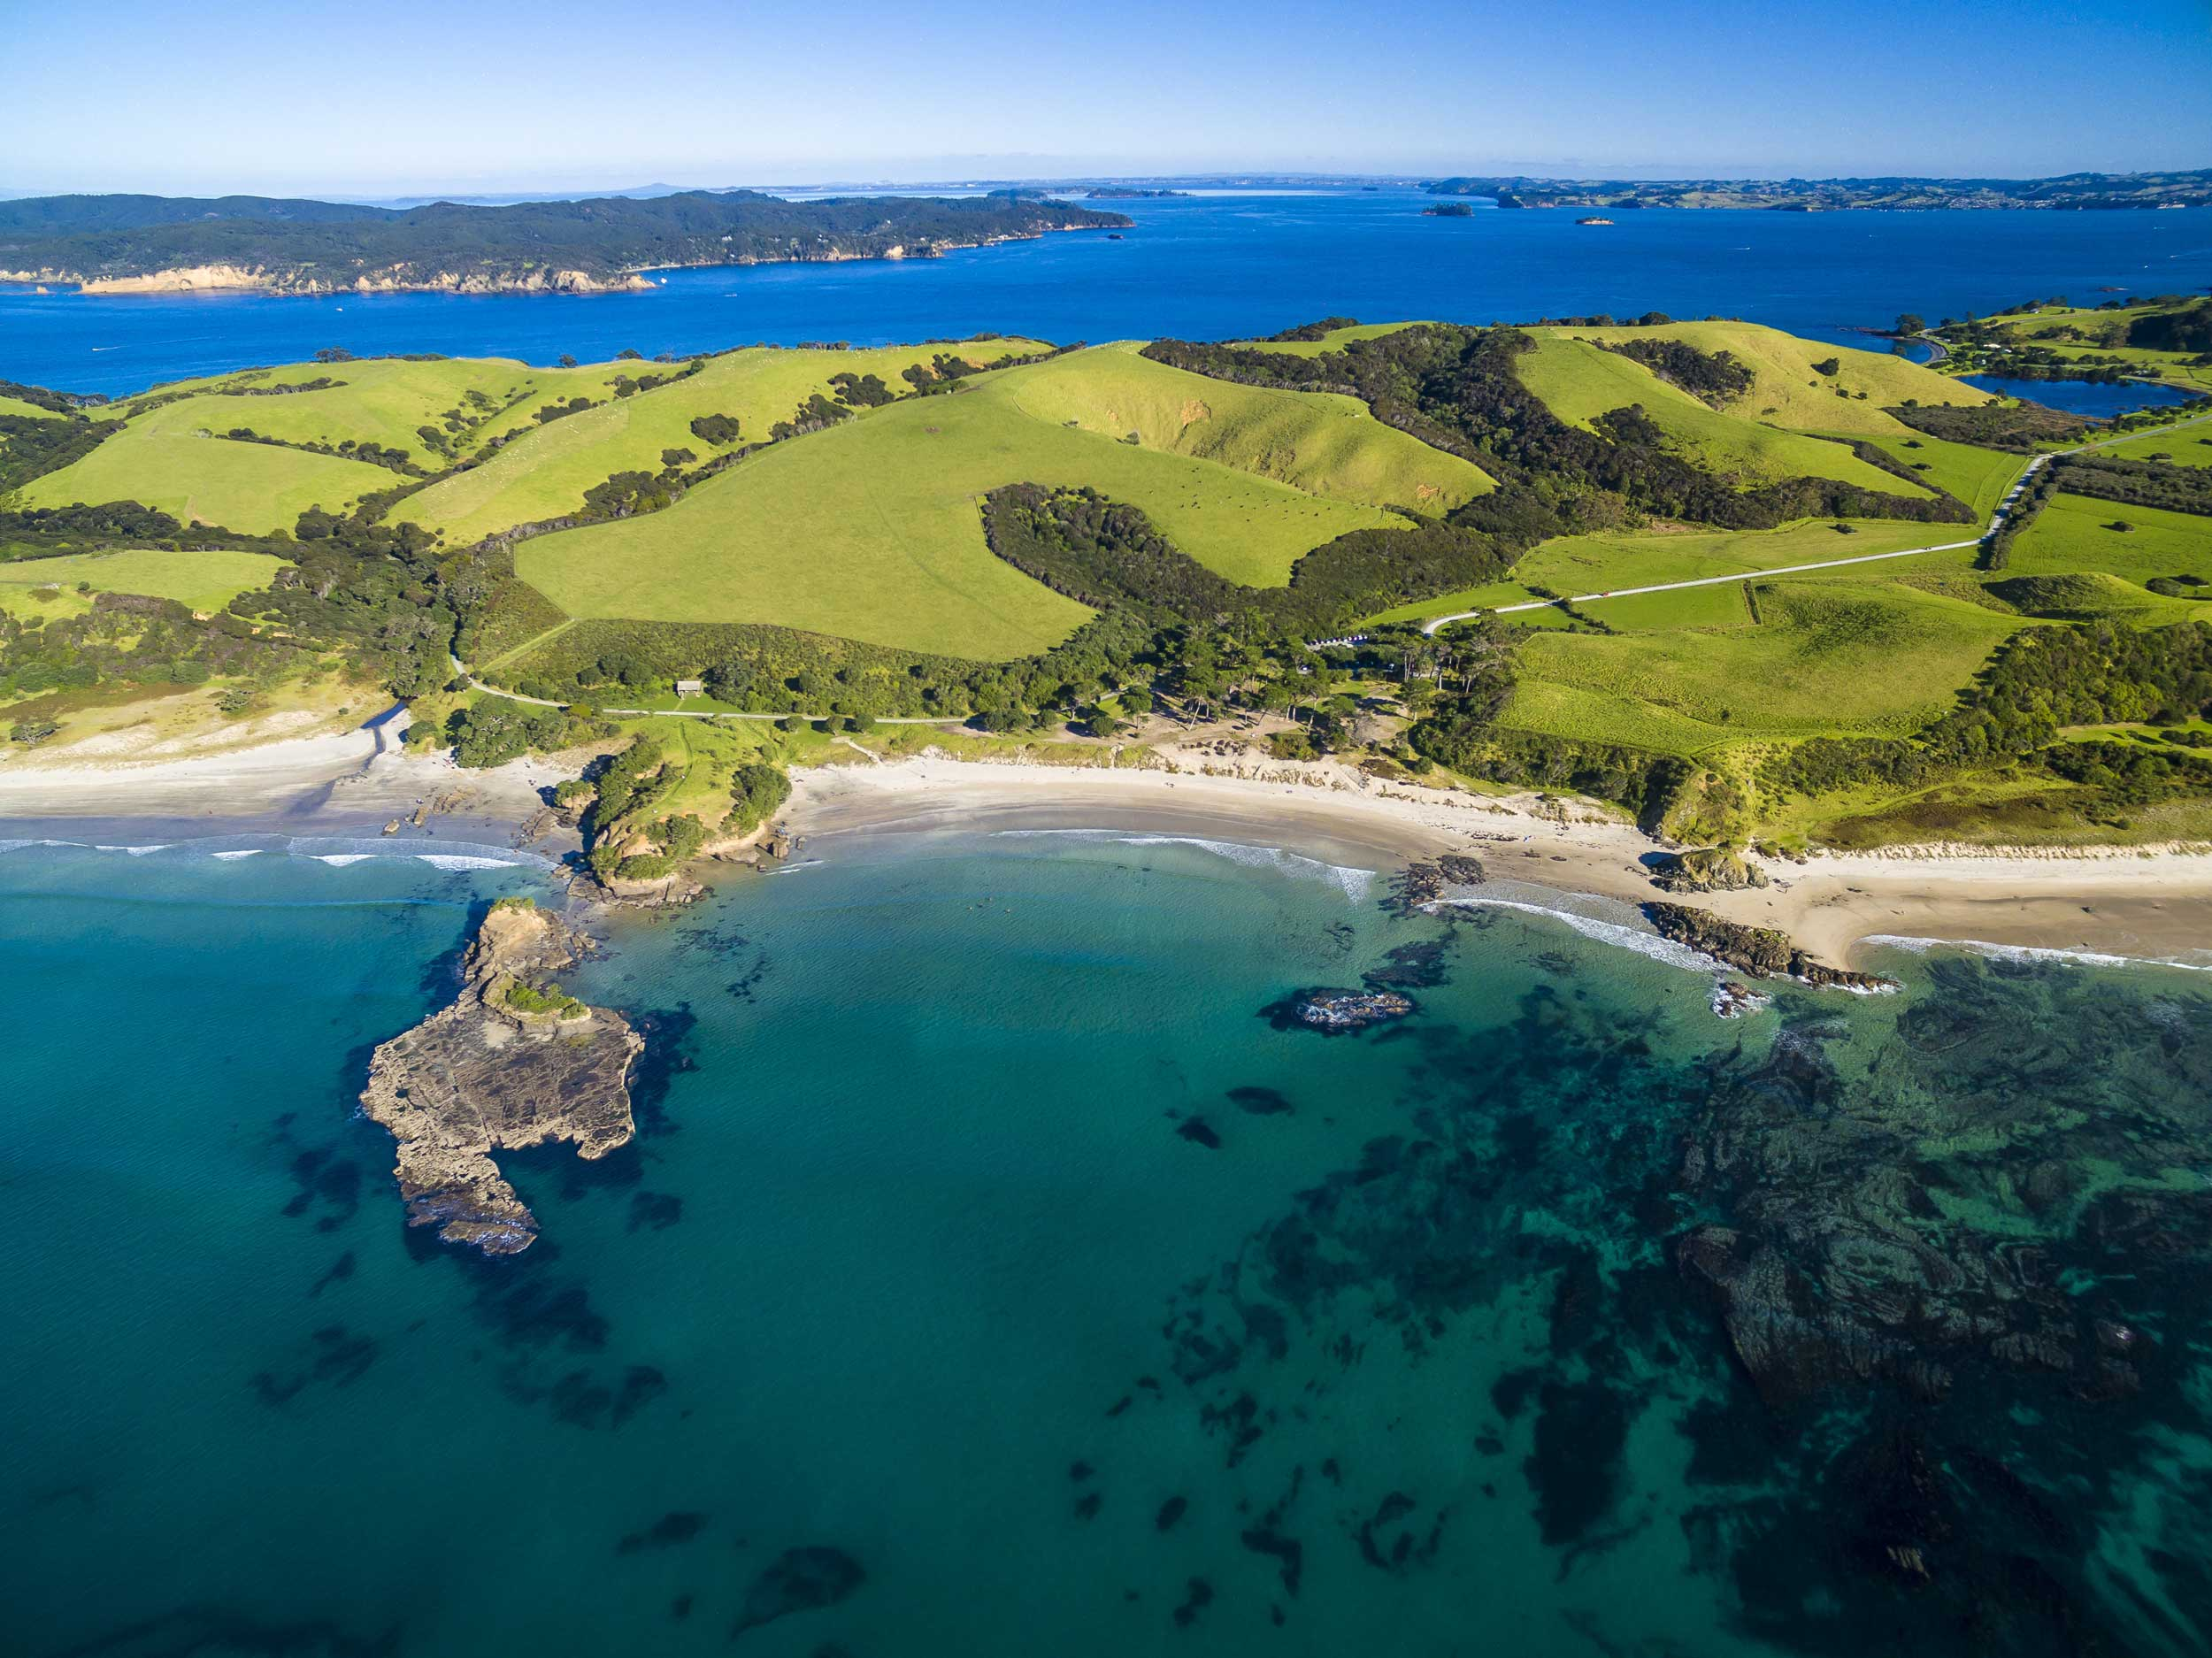 Aerial view of a peninsula with pristine beaches and green hillsides, Auckland